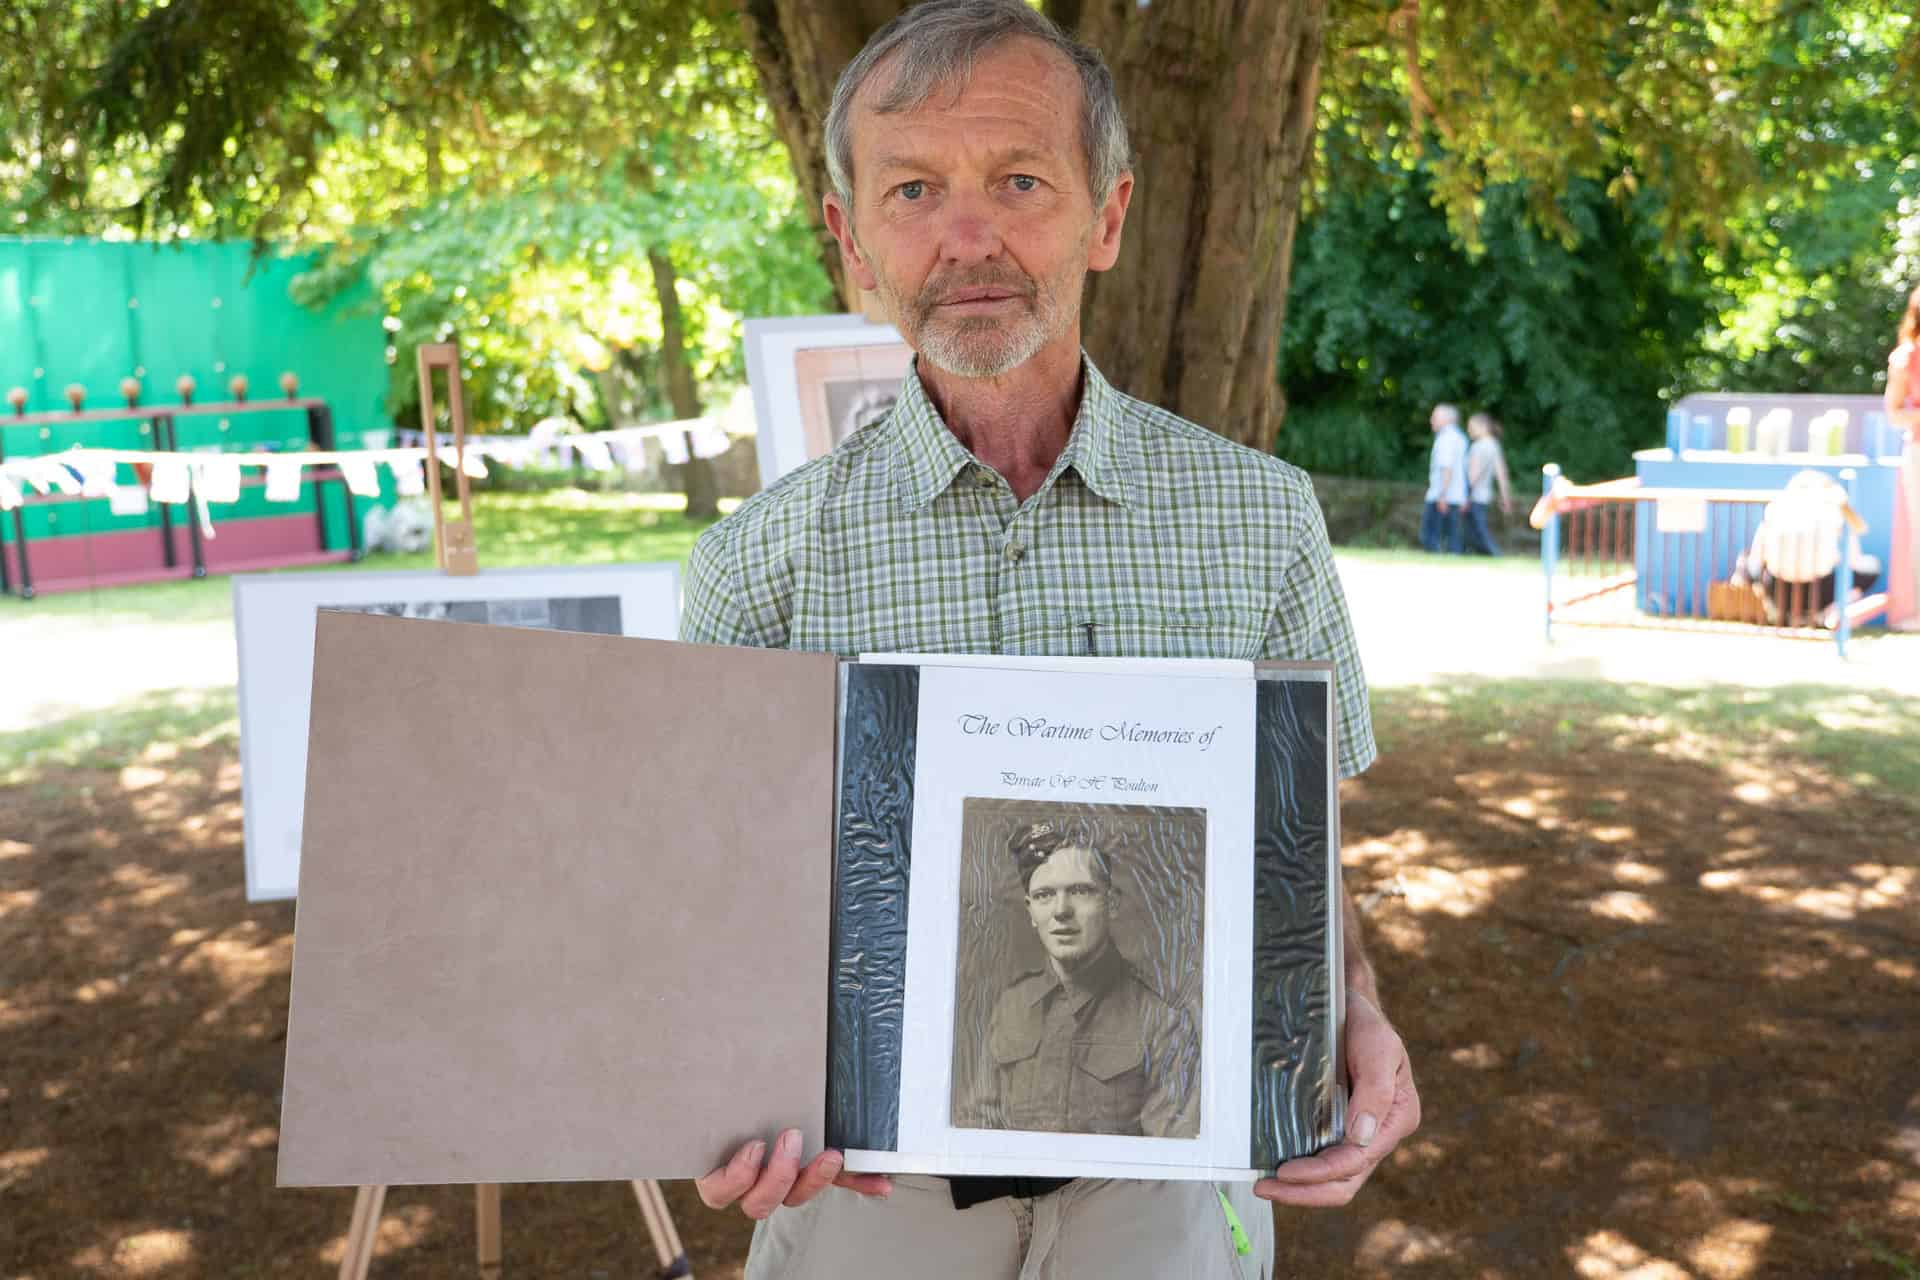 Mike Poulton shows off the album he made about his father's experiences of WW11.